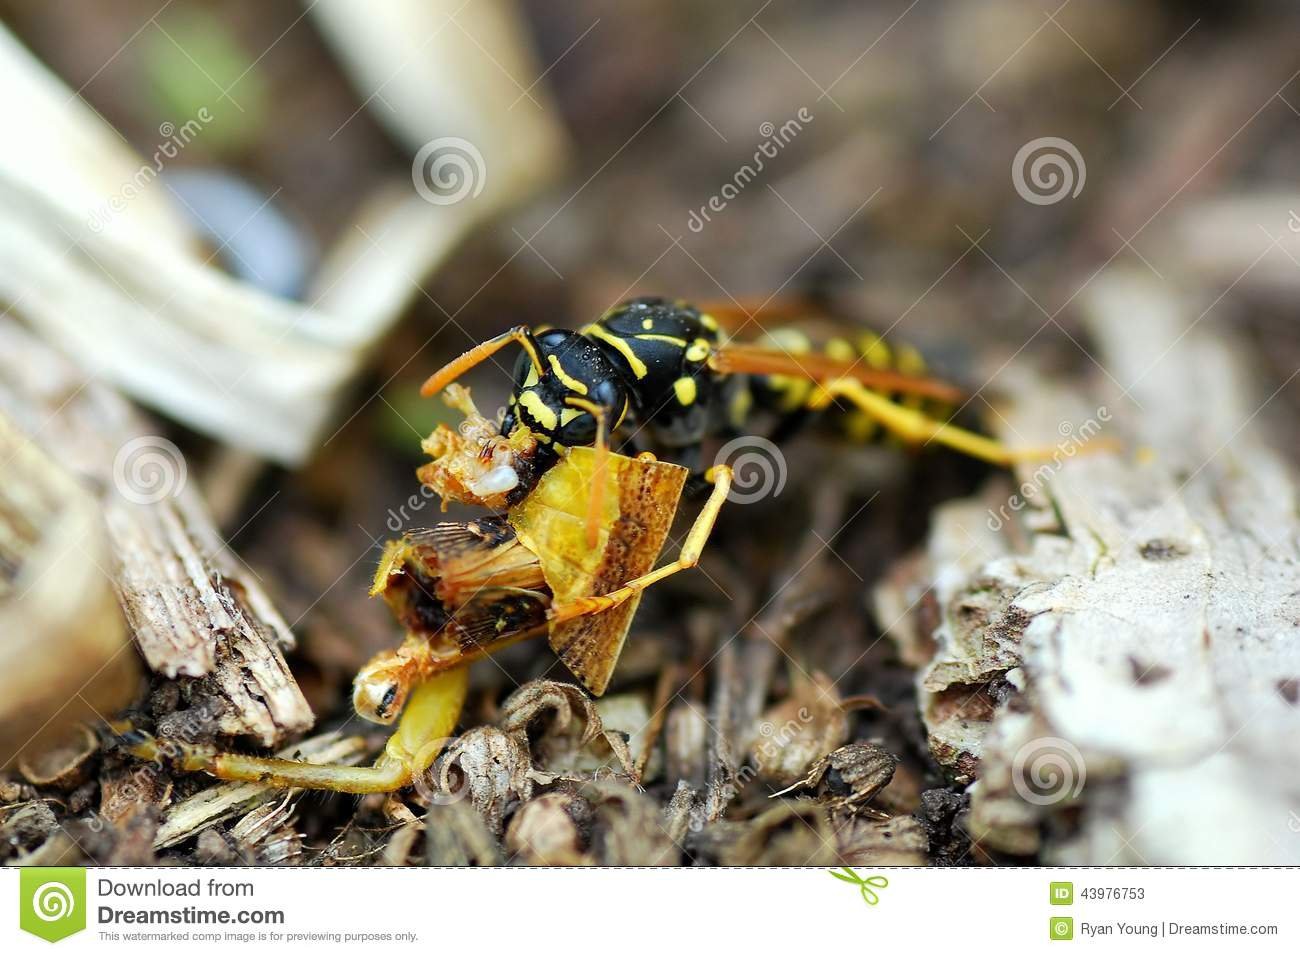 A Carnivore Wasp Munches On Remains Of A Grasshopper Stock Image ...